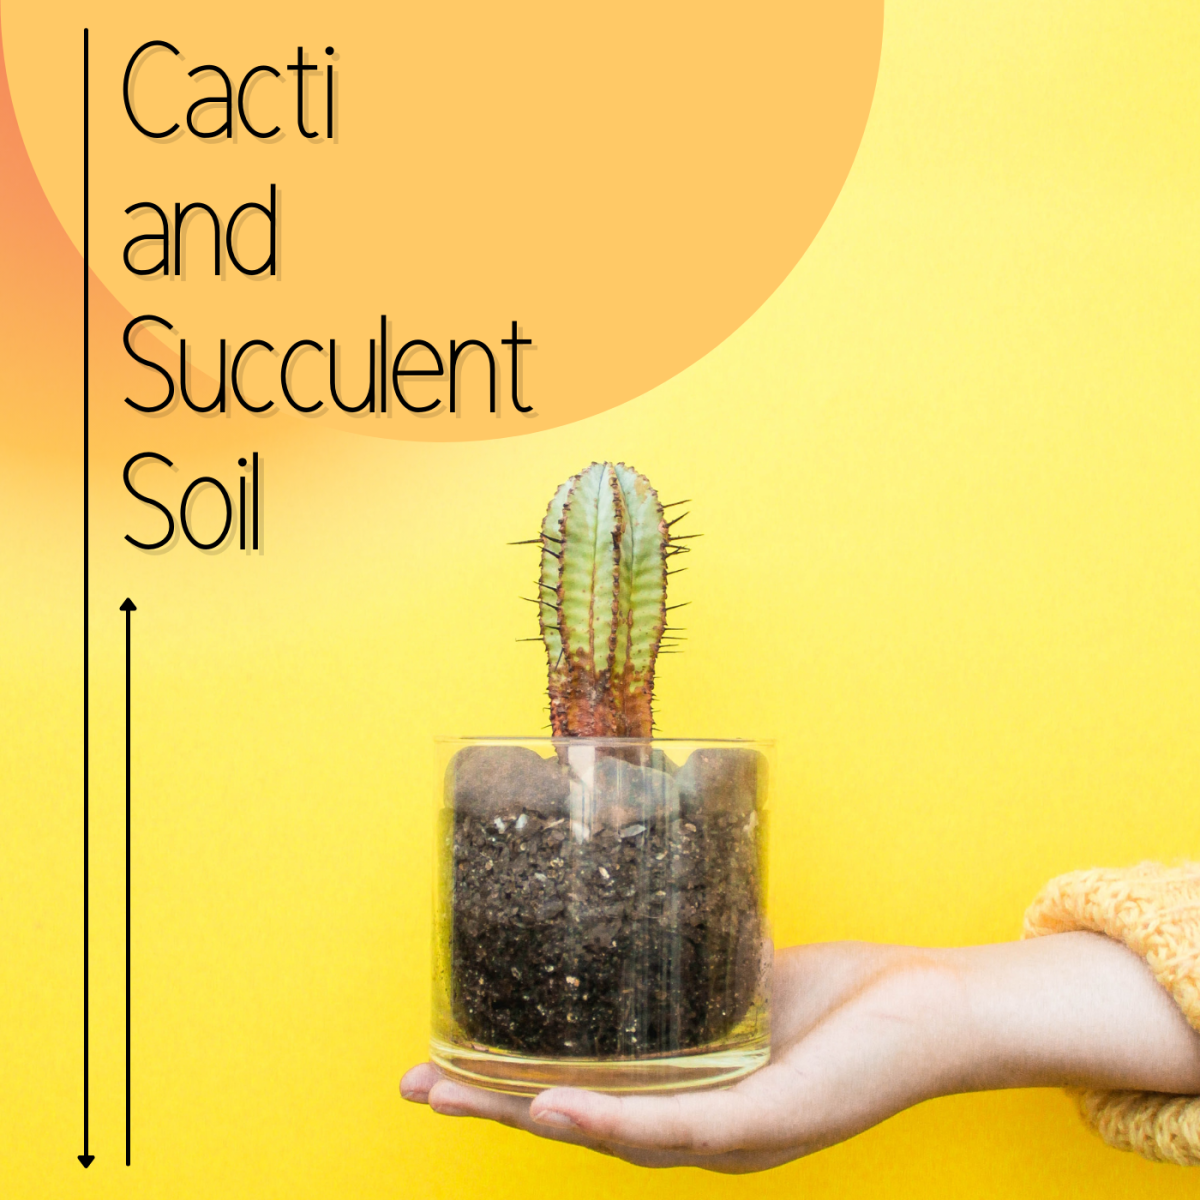 Cacti and succulent soil